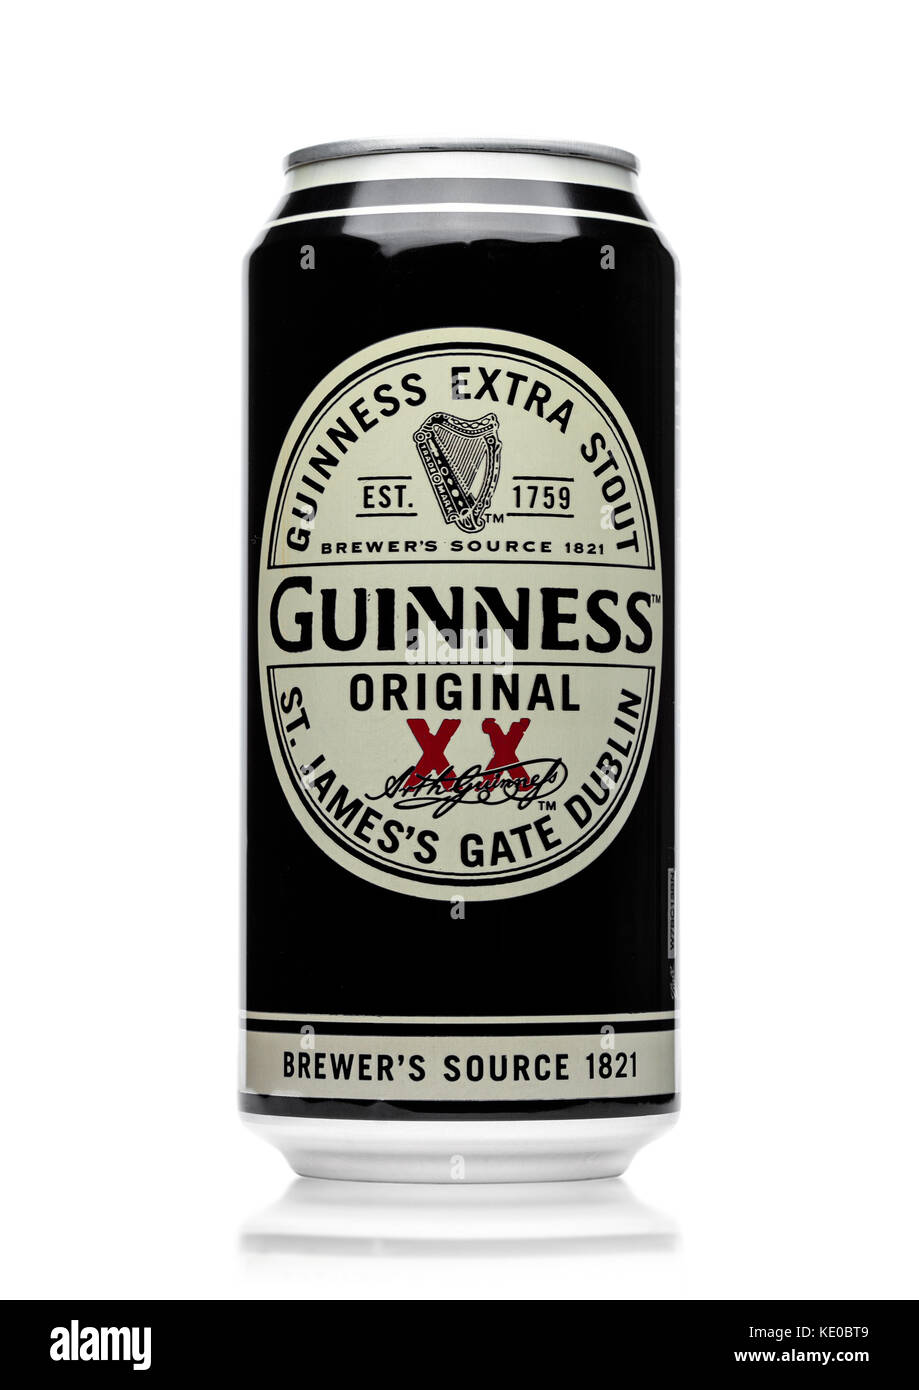 LONDON, UK - MAY 29, 2017: Alluminium can of Guinness original beer on white background. Guinness beer has been - Stock Image